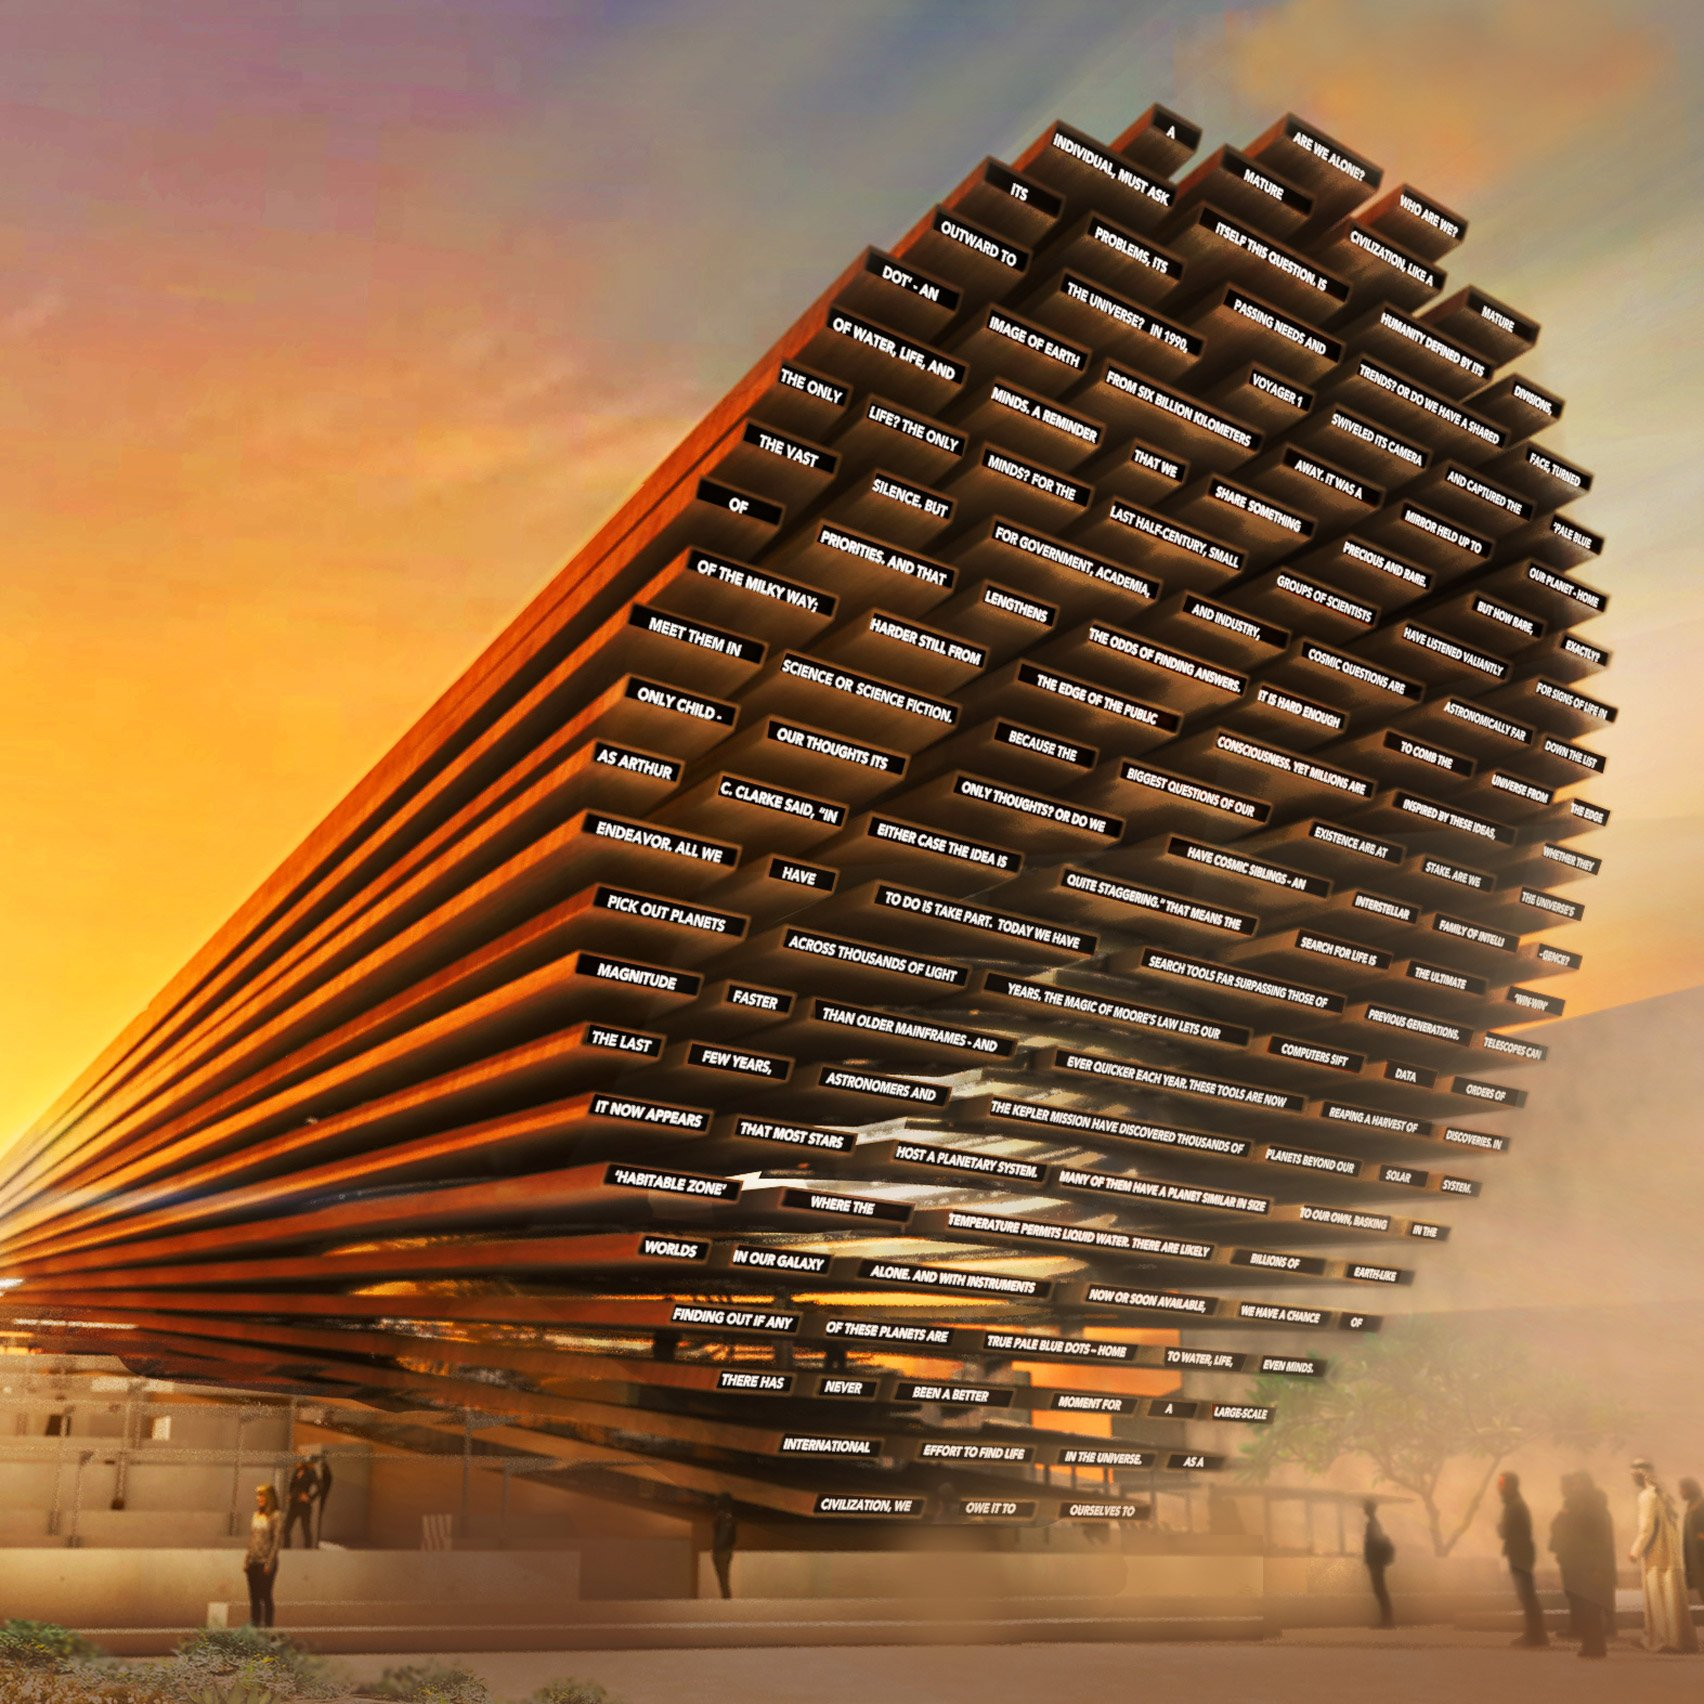 12 new buildings to look forward to in 2020: Es Devlin to design UK pavilion for Dubai Expo 2020